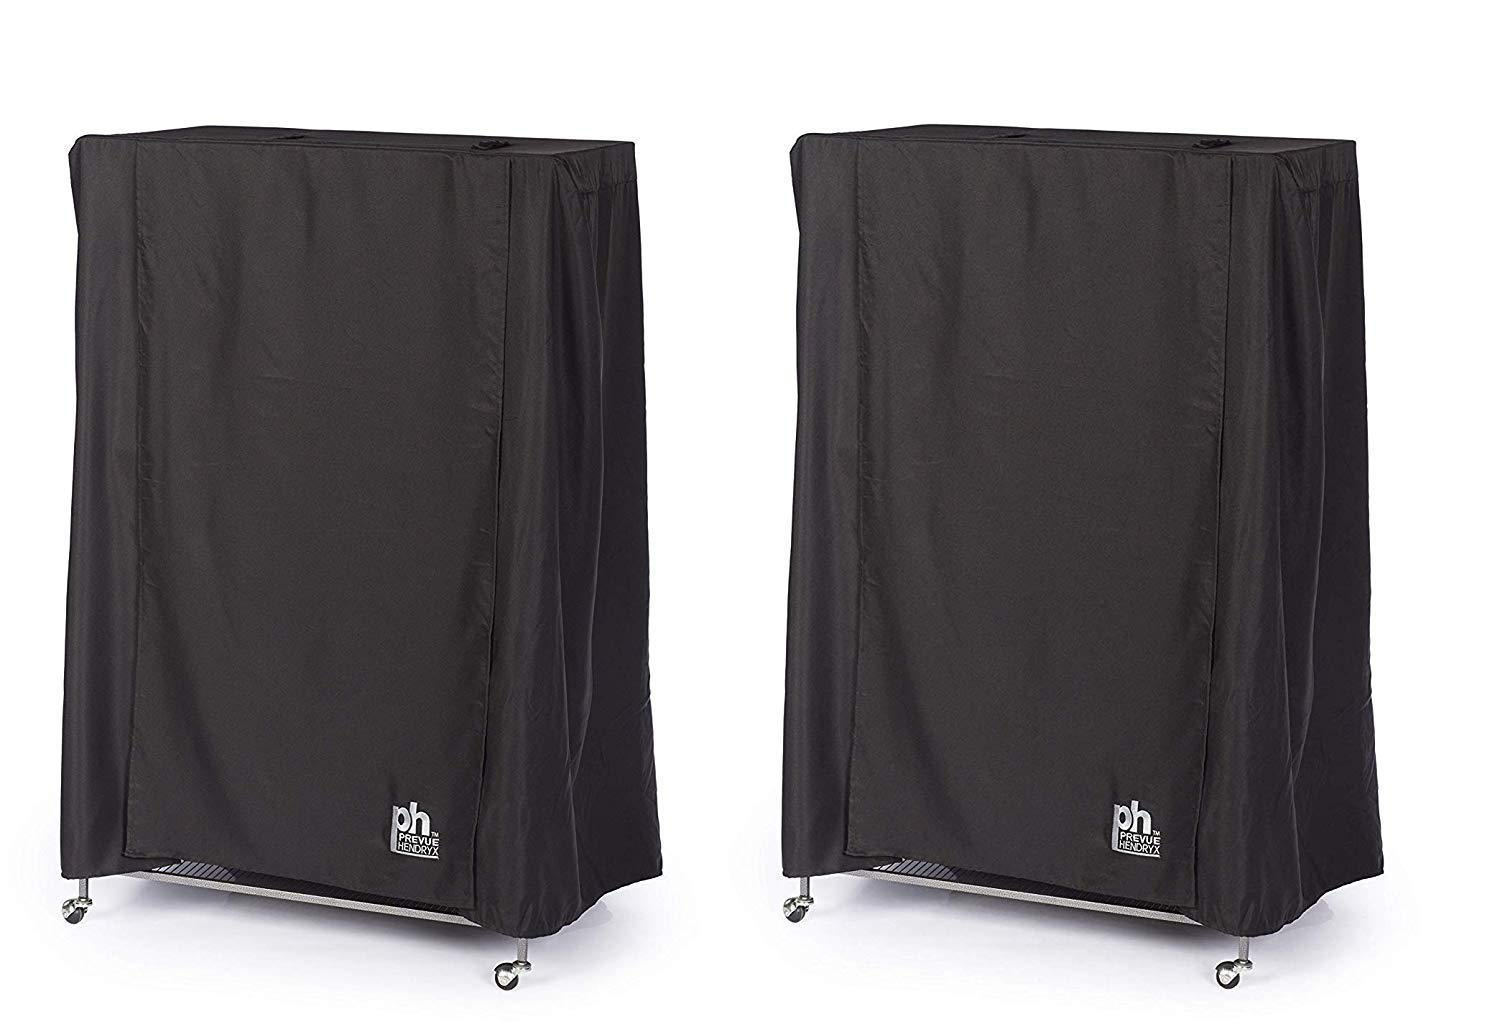 Prevue Hendryx Pet Products Good Night Bird Cage Cover, Large, Black (Pack of 2) by Prevue Hendryx